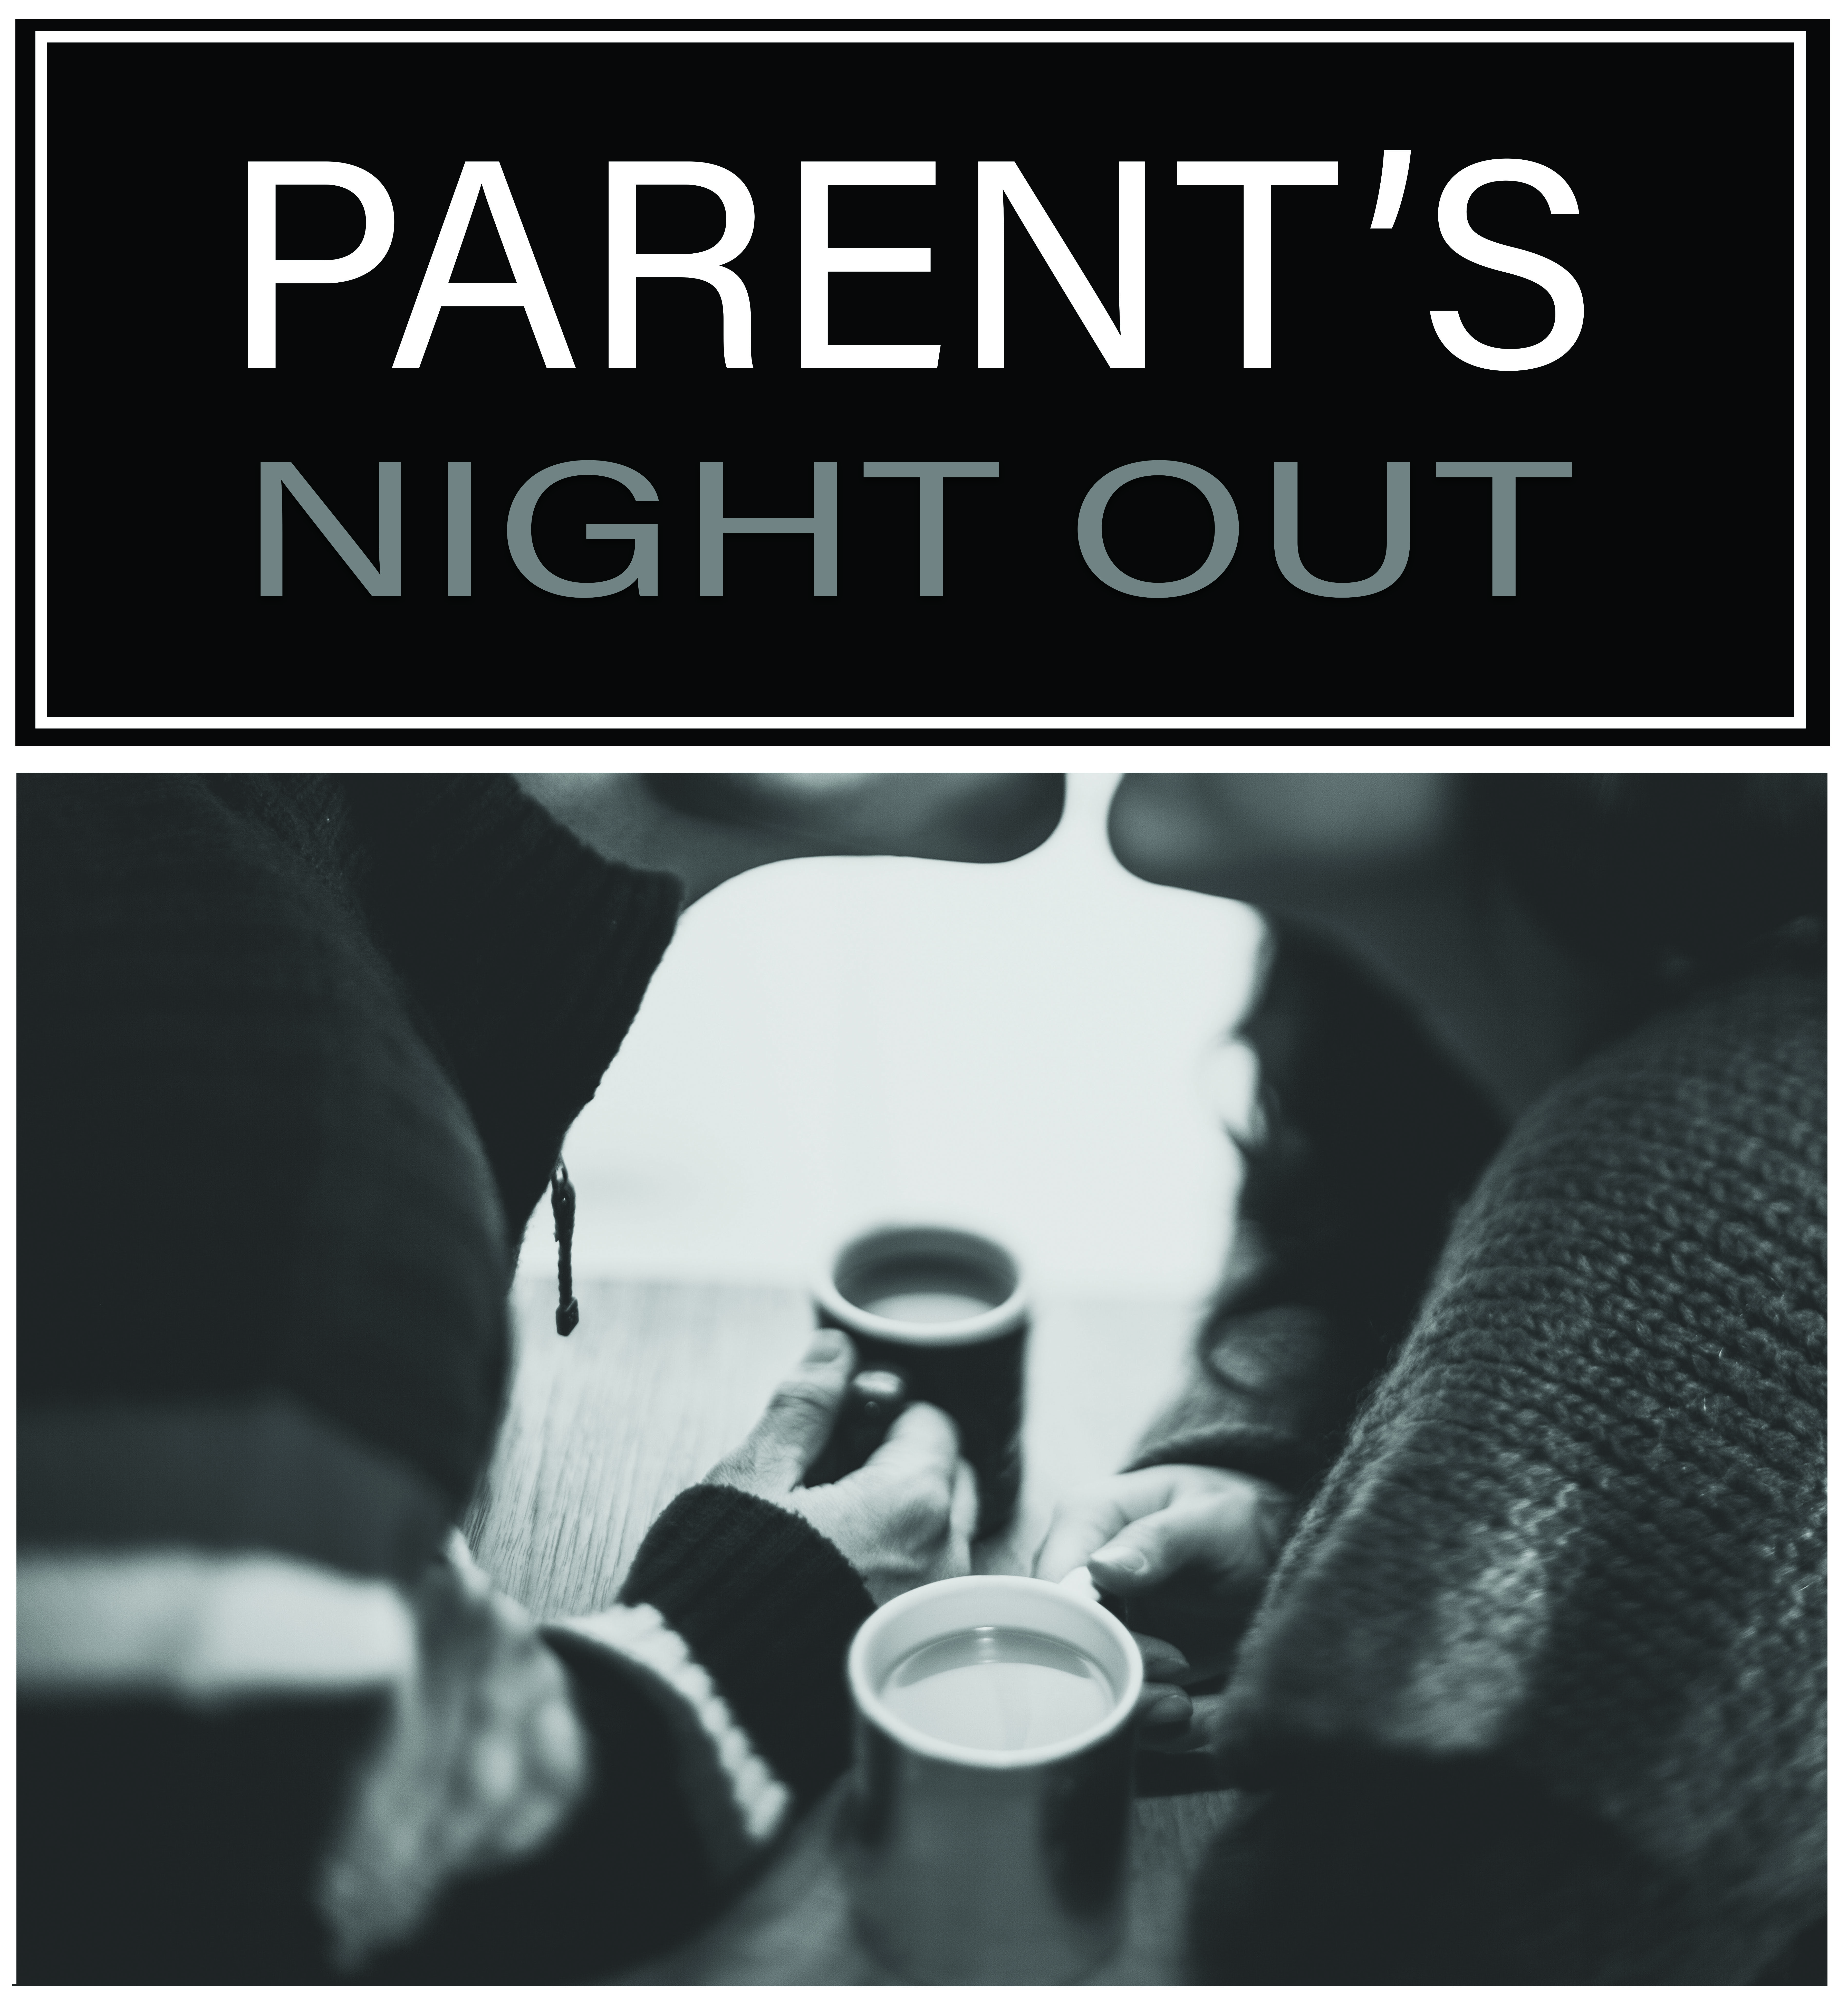 Parents night out graphic